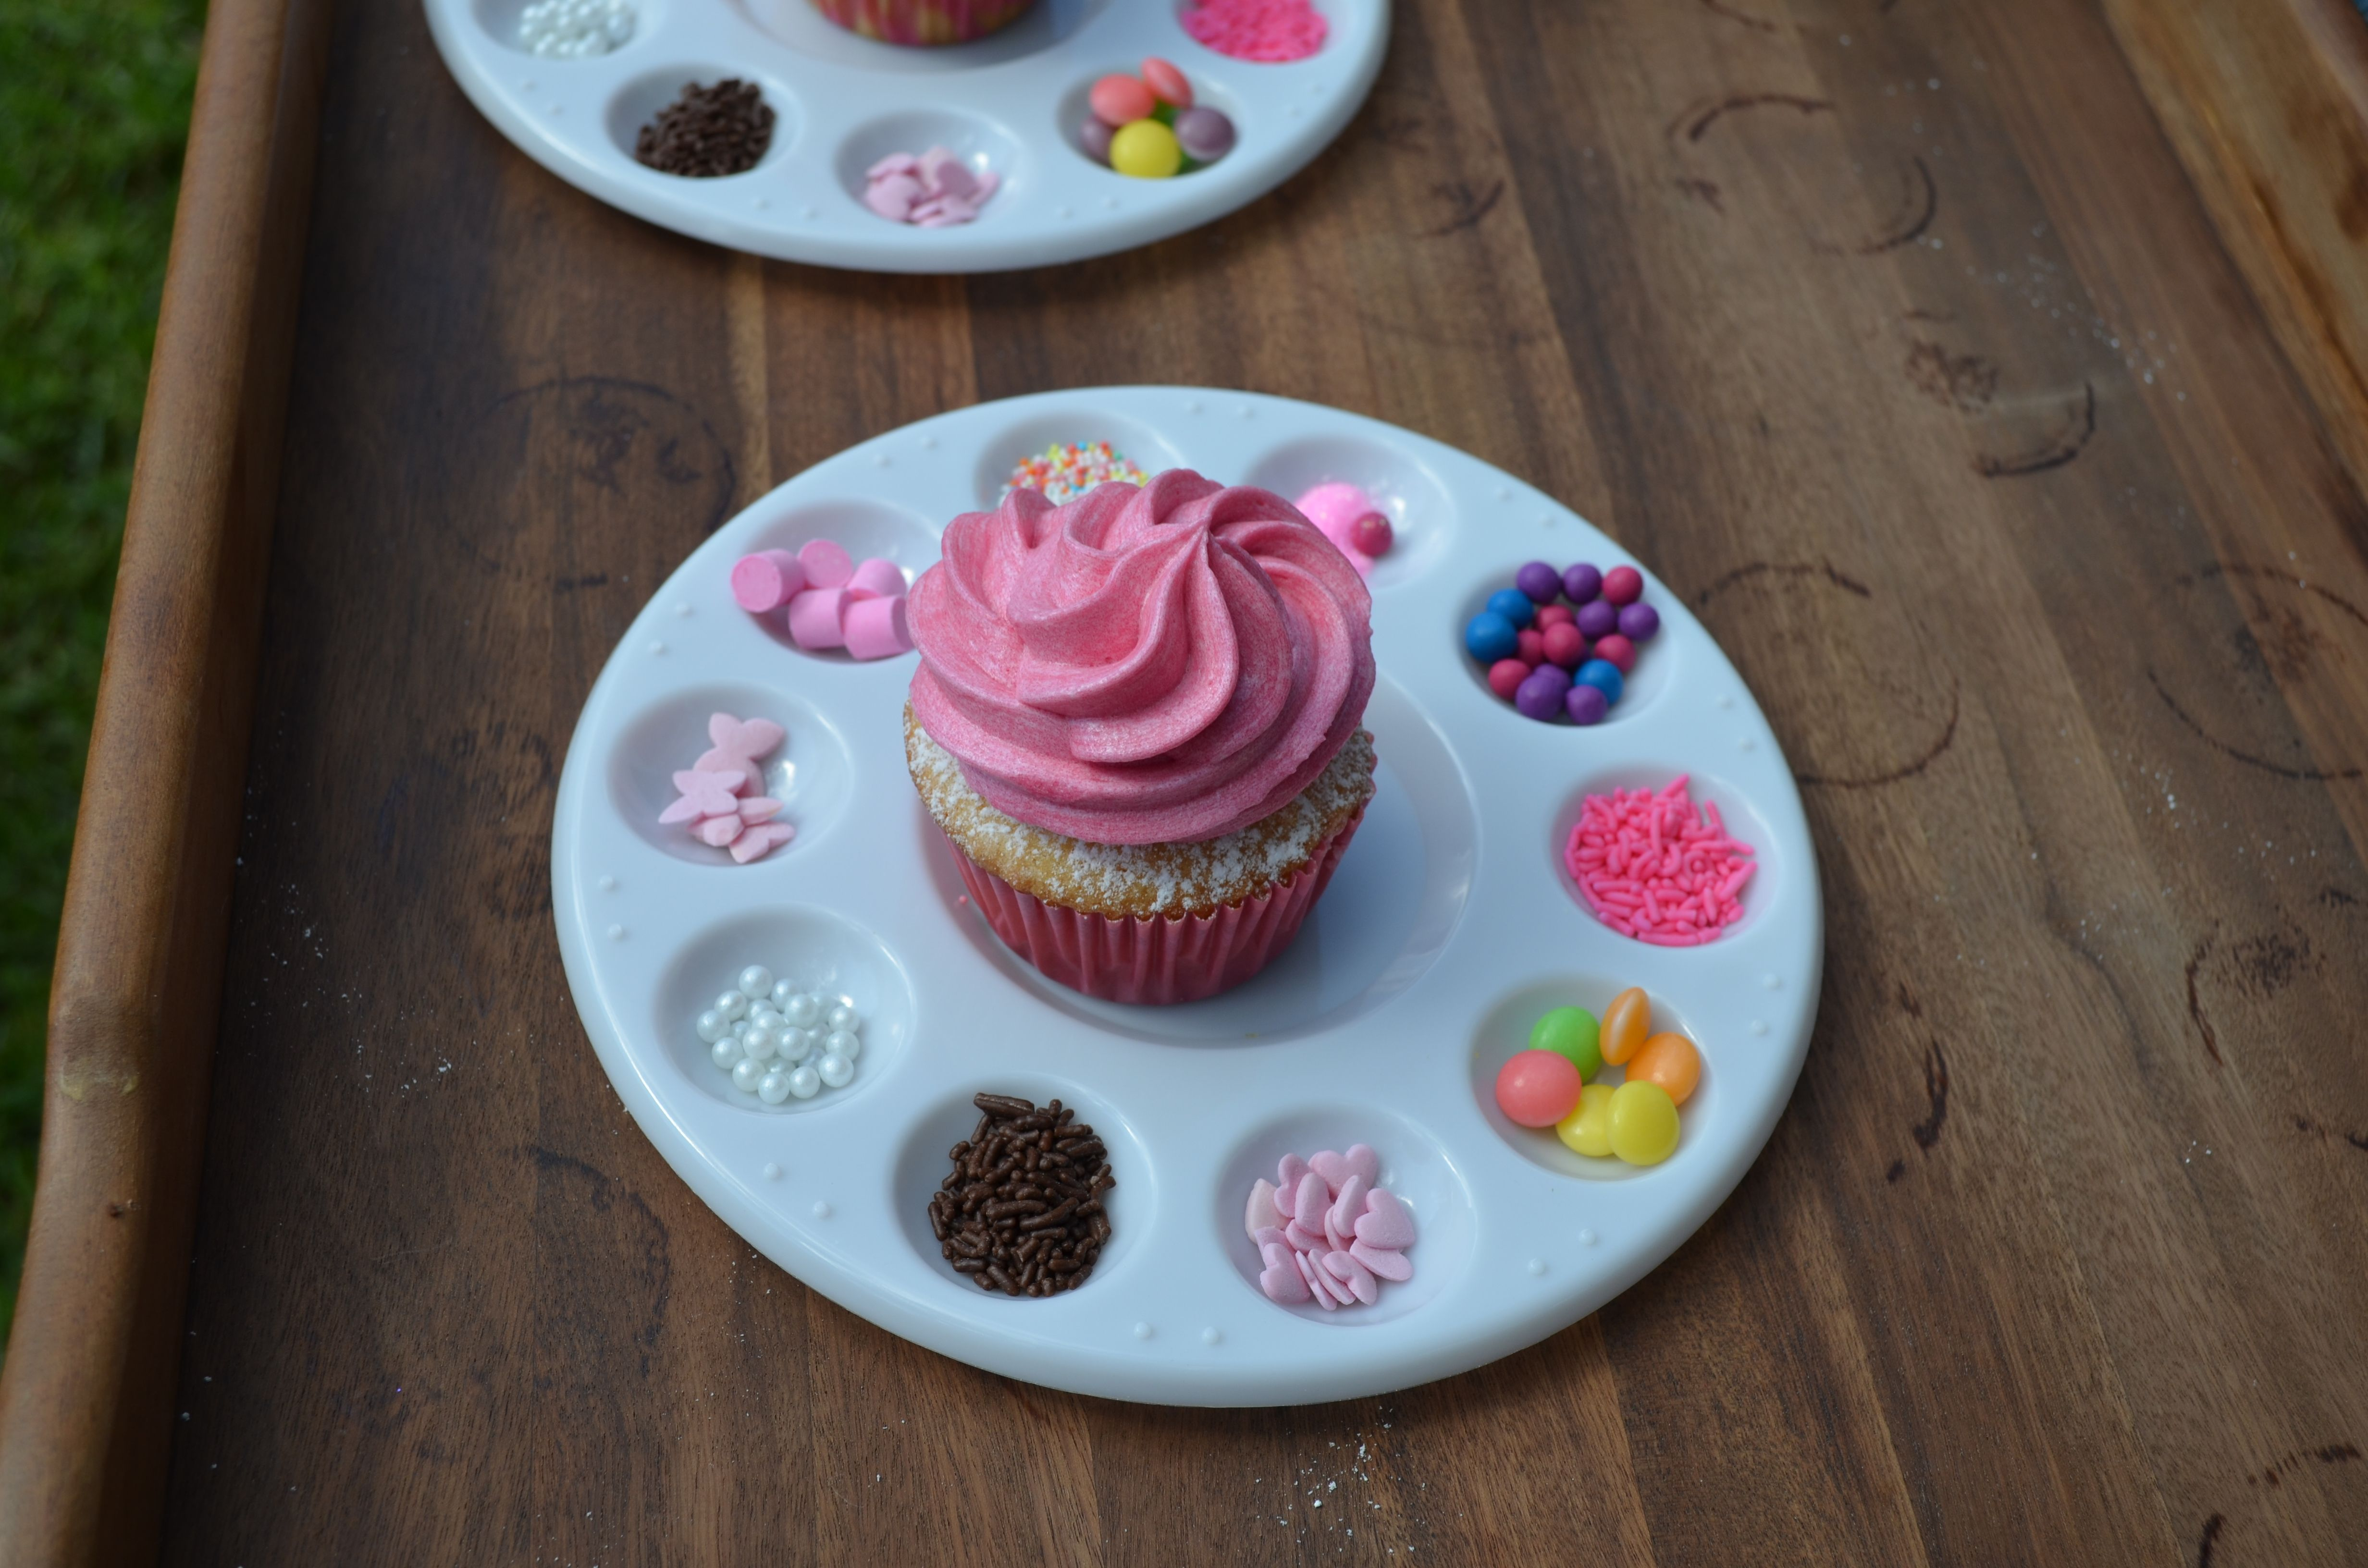 Anja turns 3 - decorate your own cupcake